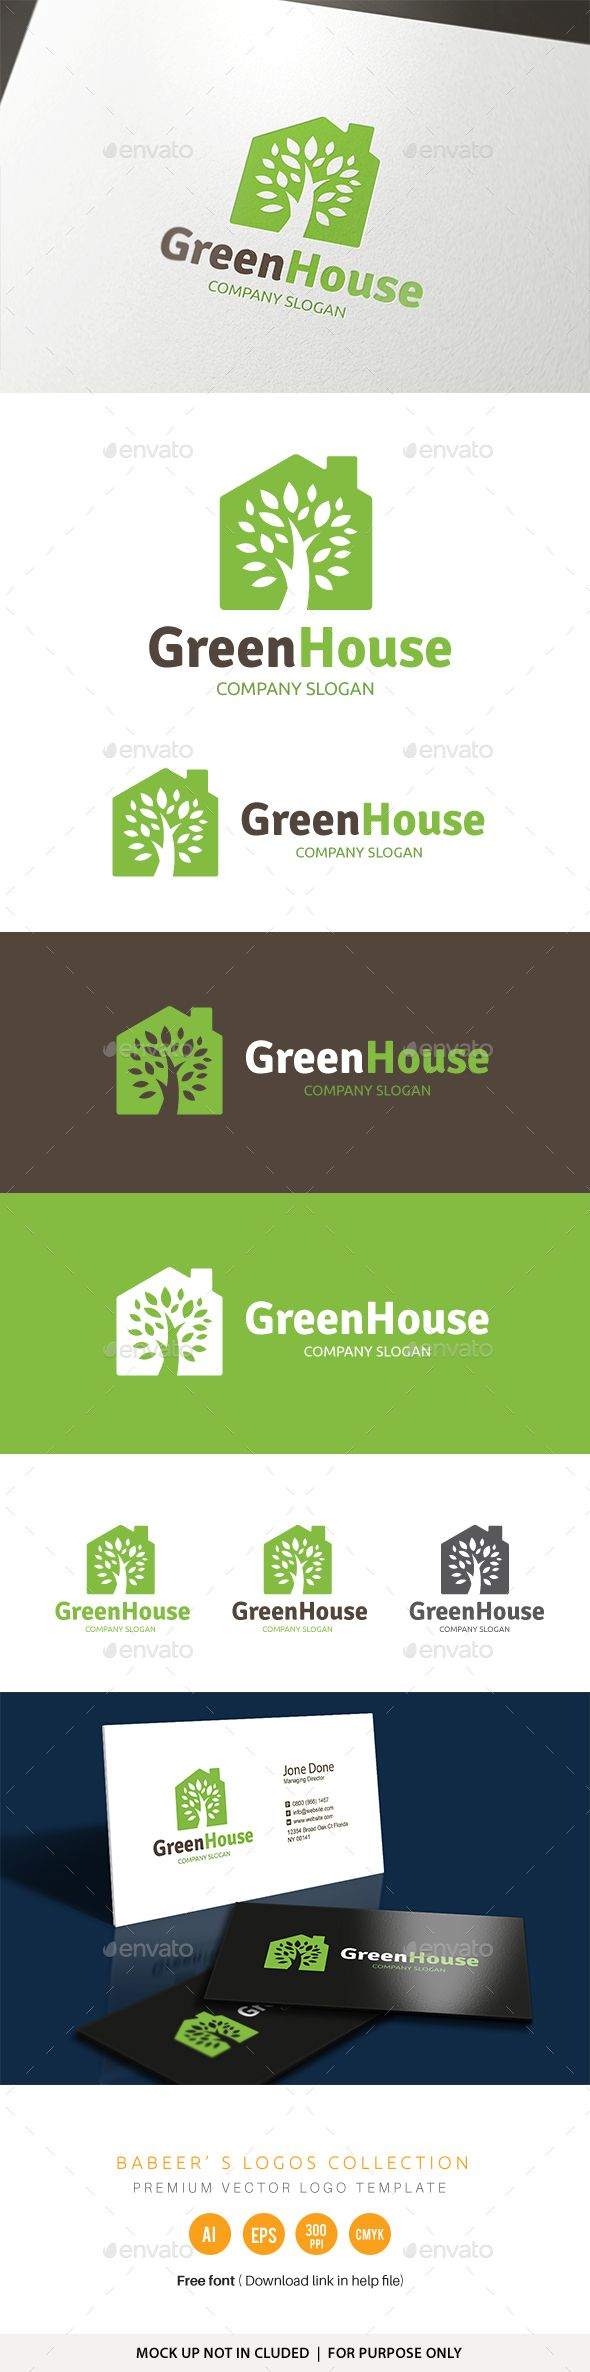 Green House Logo — Transparent PNG #real estate #eco • Available here → https://graphicriver.net/item/green-house-logo/18567772?ref=pxcr